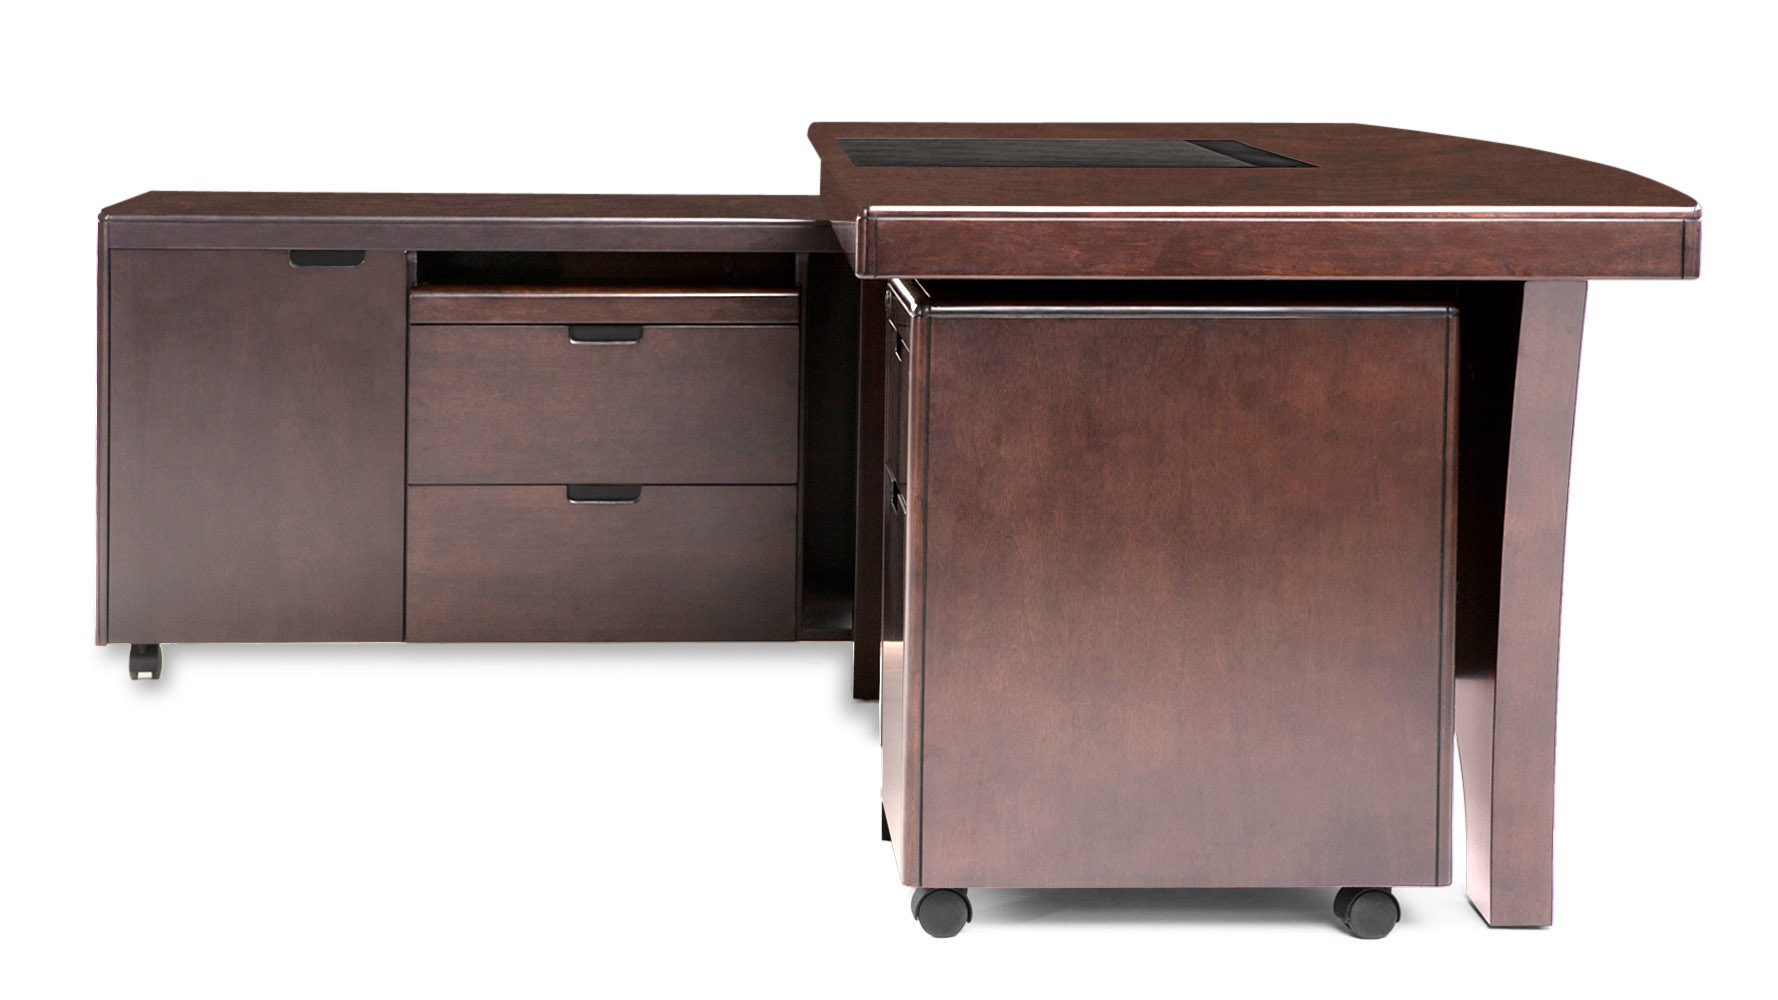 over executive image flexiblemove with larger cabinet click desk office filing to view or mouse mahogany rolling file return reagan and zoom